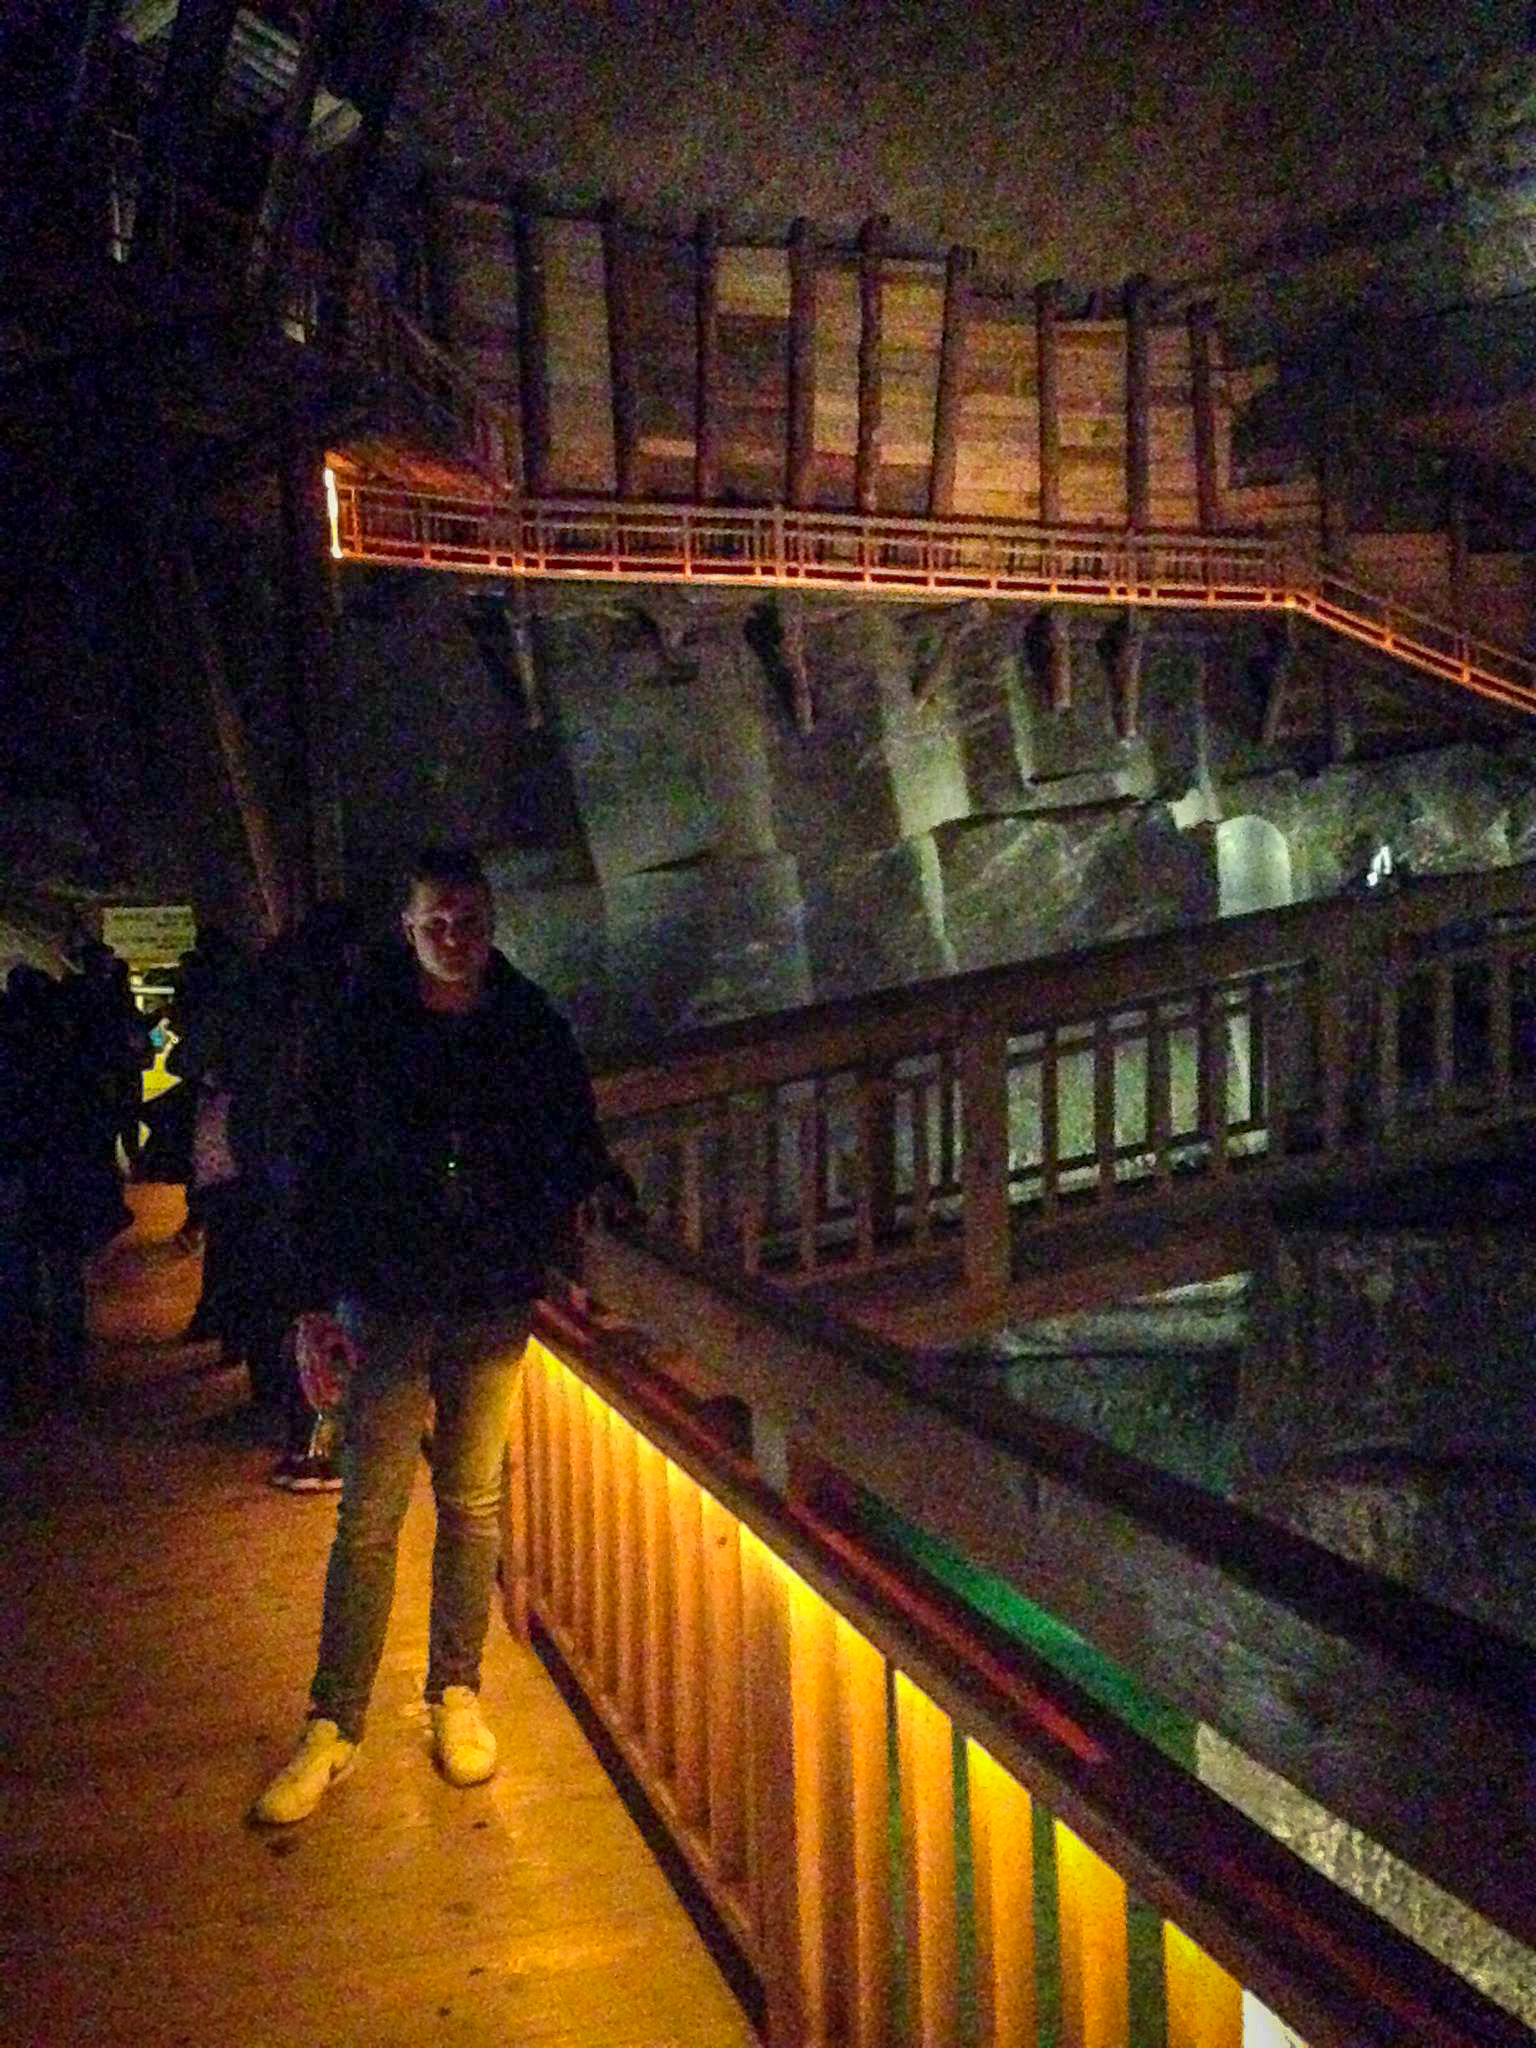 Me on a visit to Wieliczka Salt Mine in 2015.